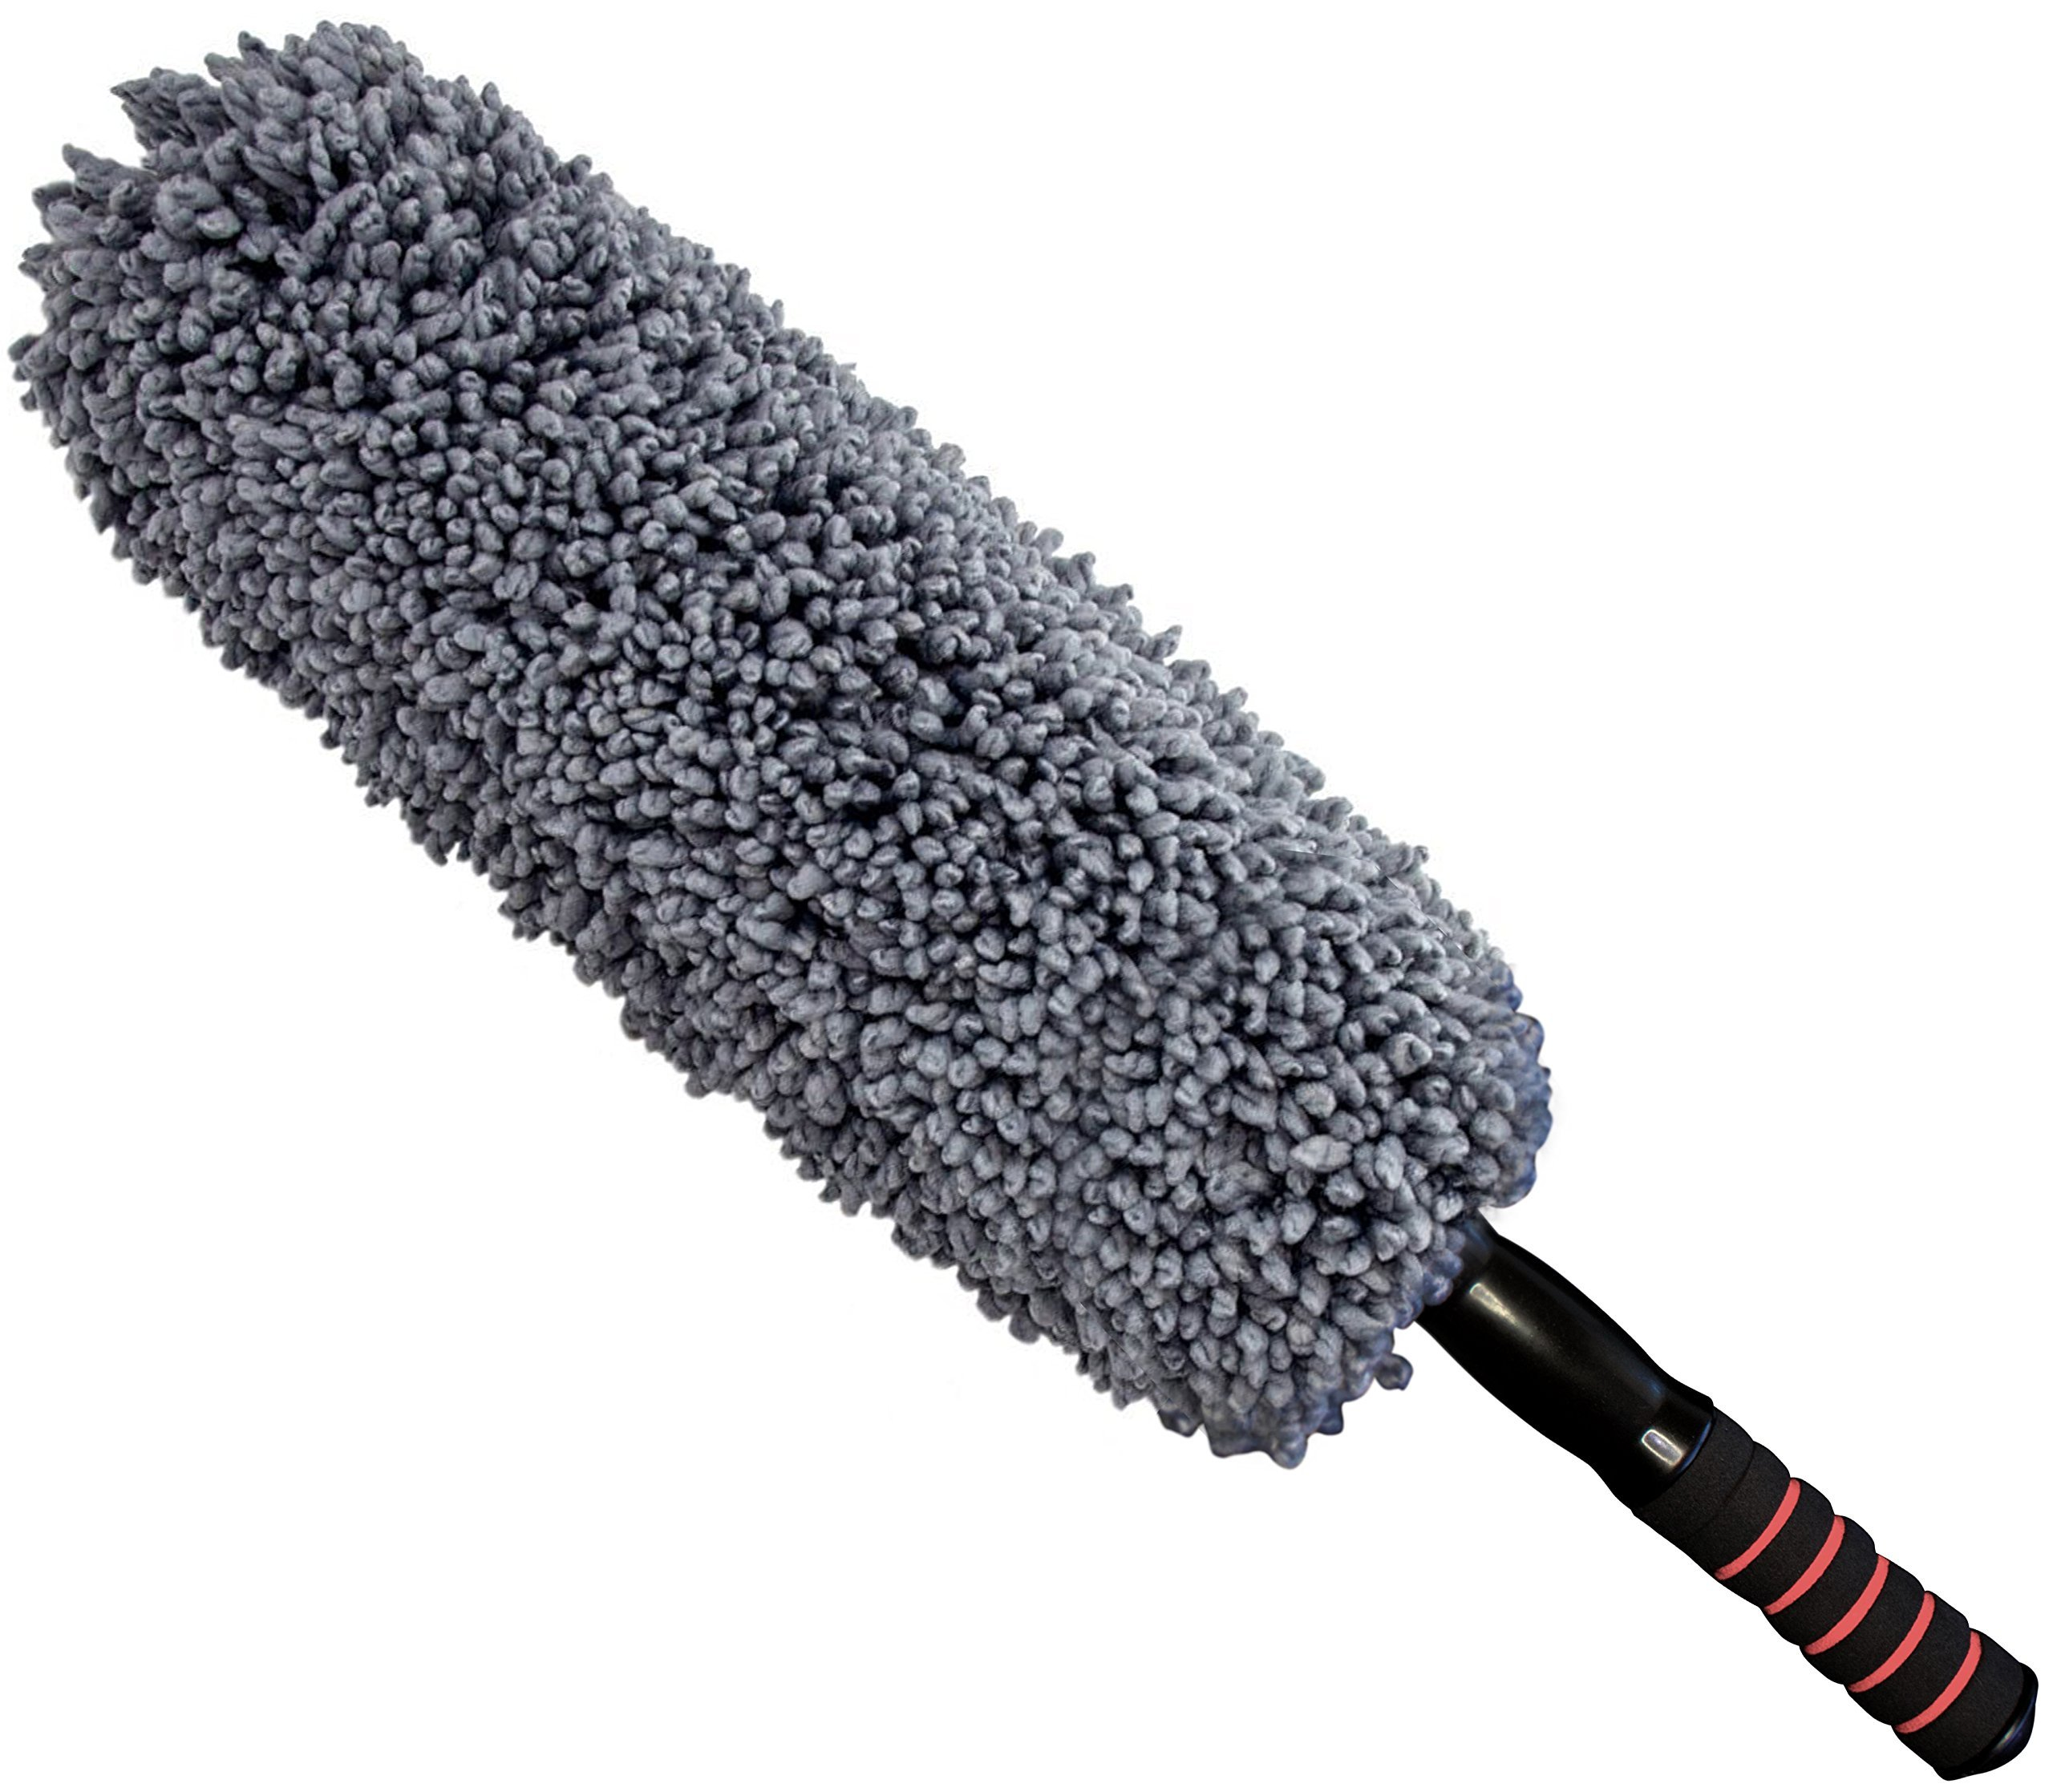 Ultra Premium Car Duster - Better Than The California Duster - Long Extendable Handle - No Wax Streaks Left Behind by Prestige Auto Care (Image #2)